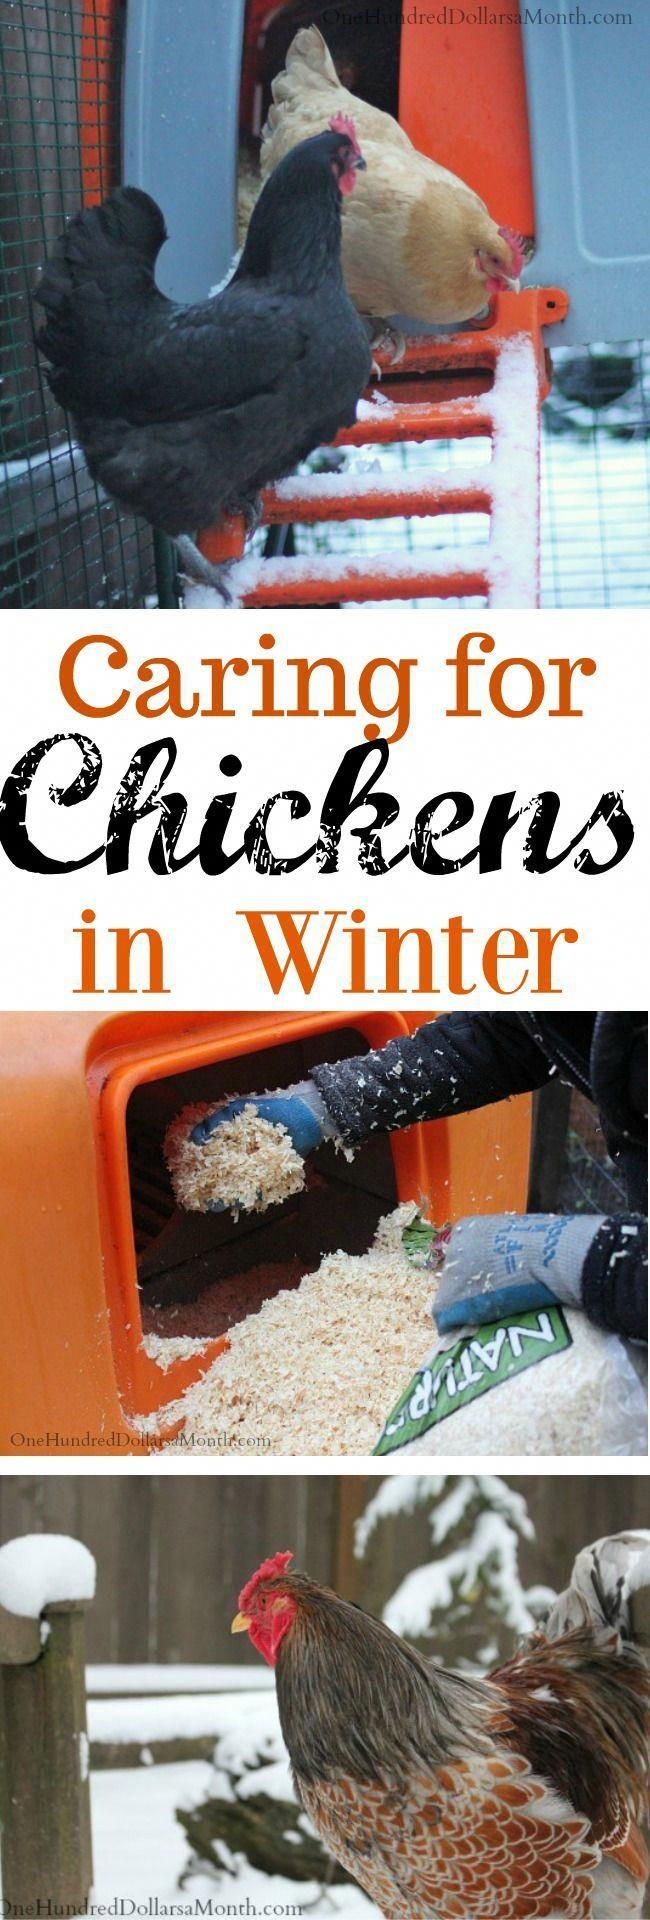 Caring for Chickens in the Winter | Chickens in the winter ...